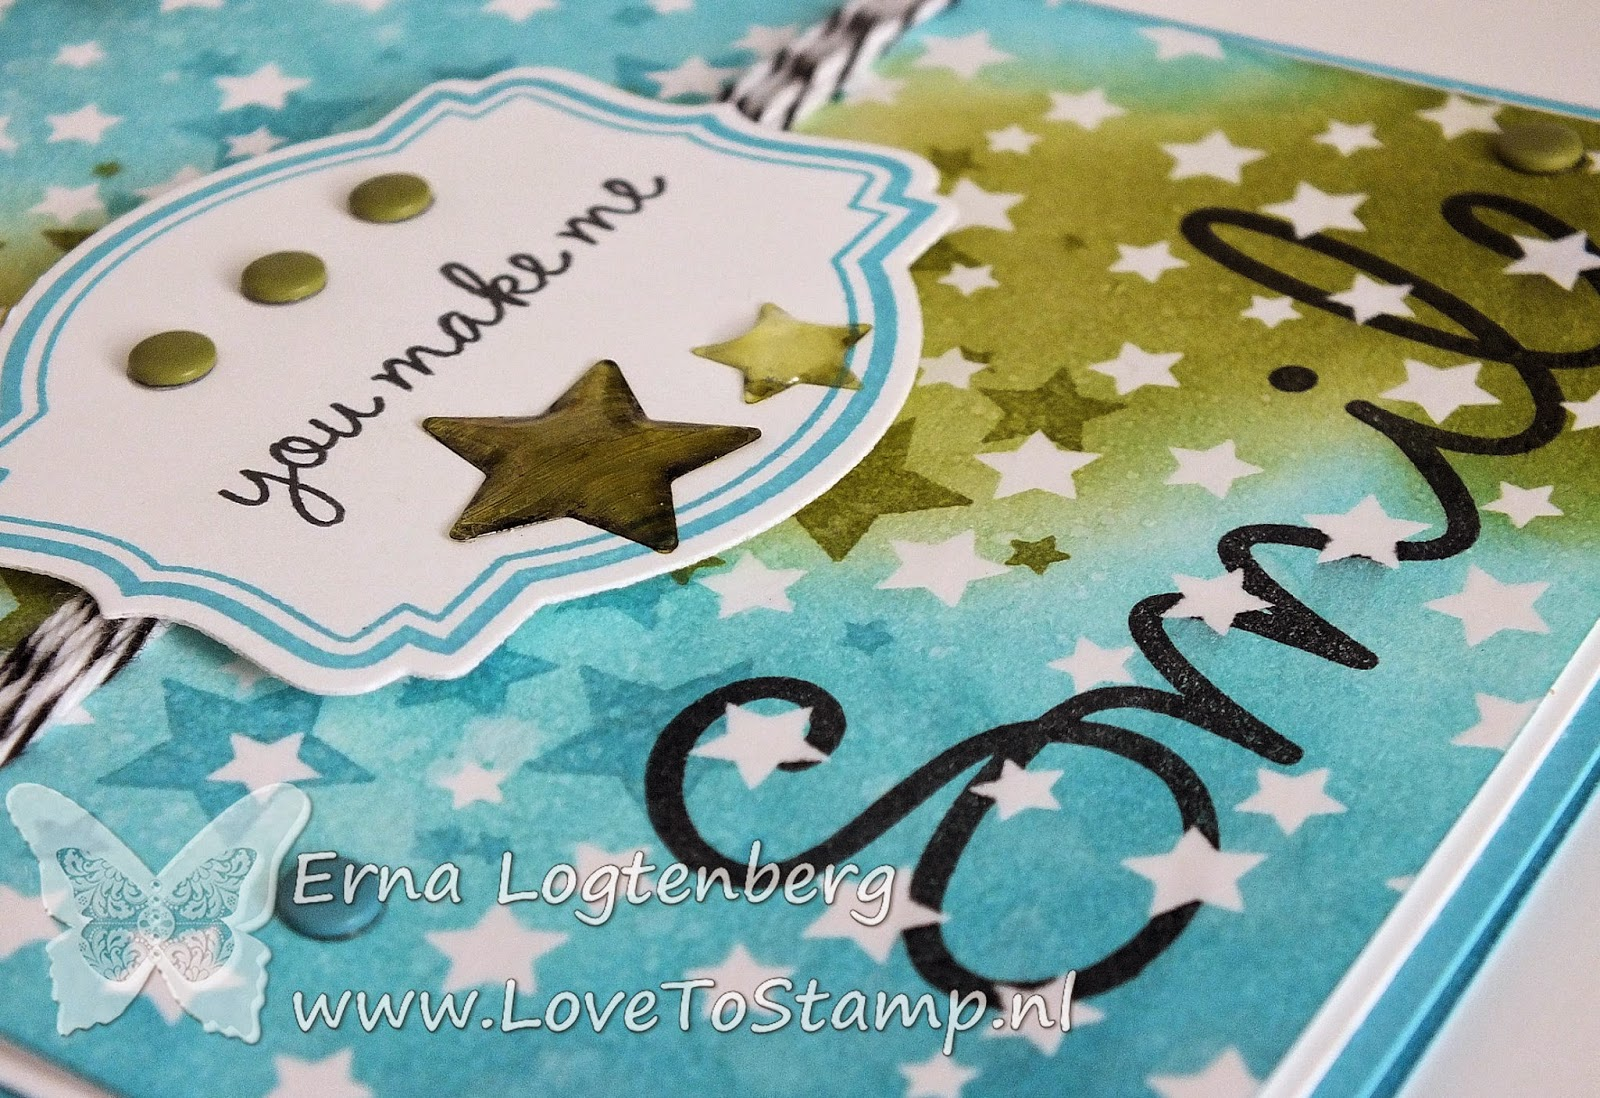 Stampin'Up! stampinup 'so you' lovetostamp erna logtenberg